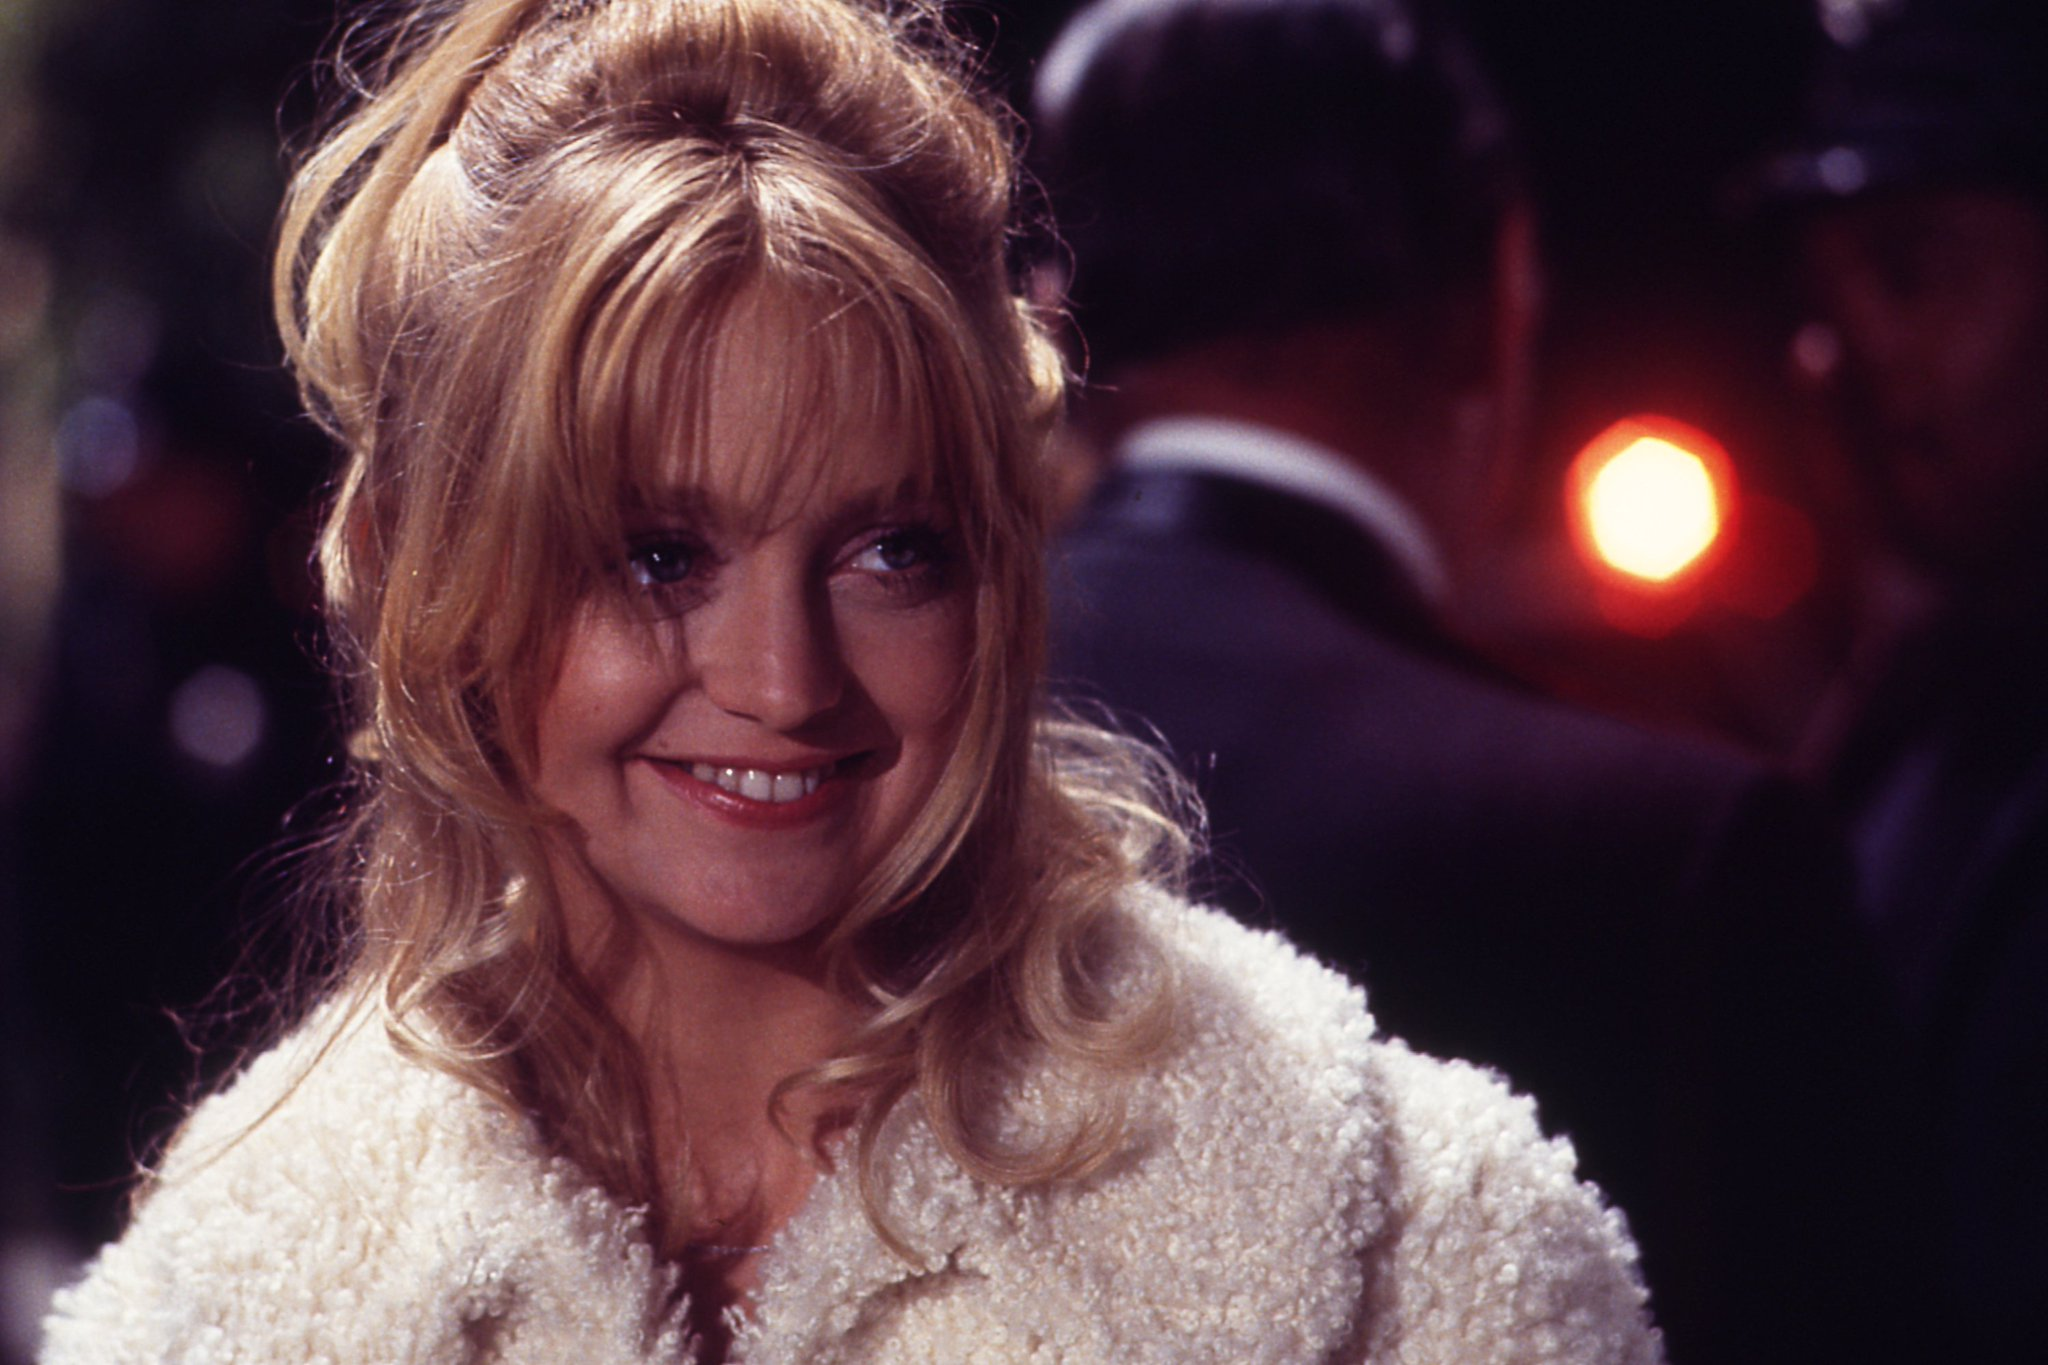 Happy birthday to the glorious Goldie Hawn!